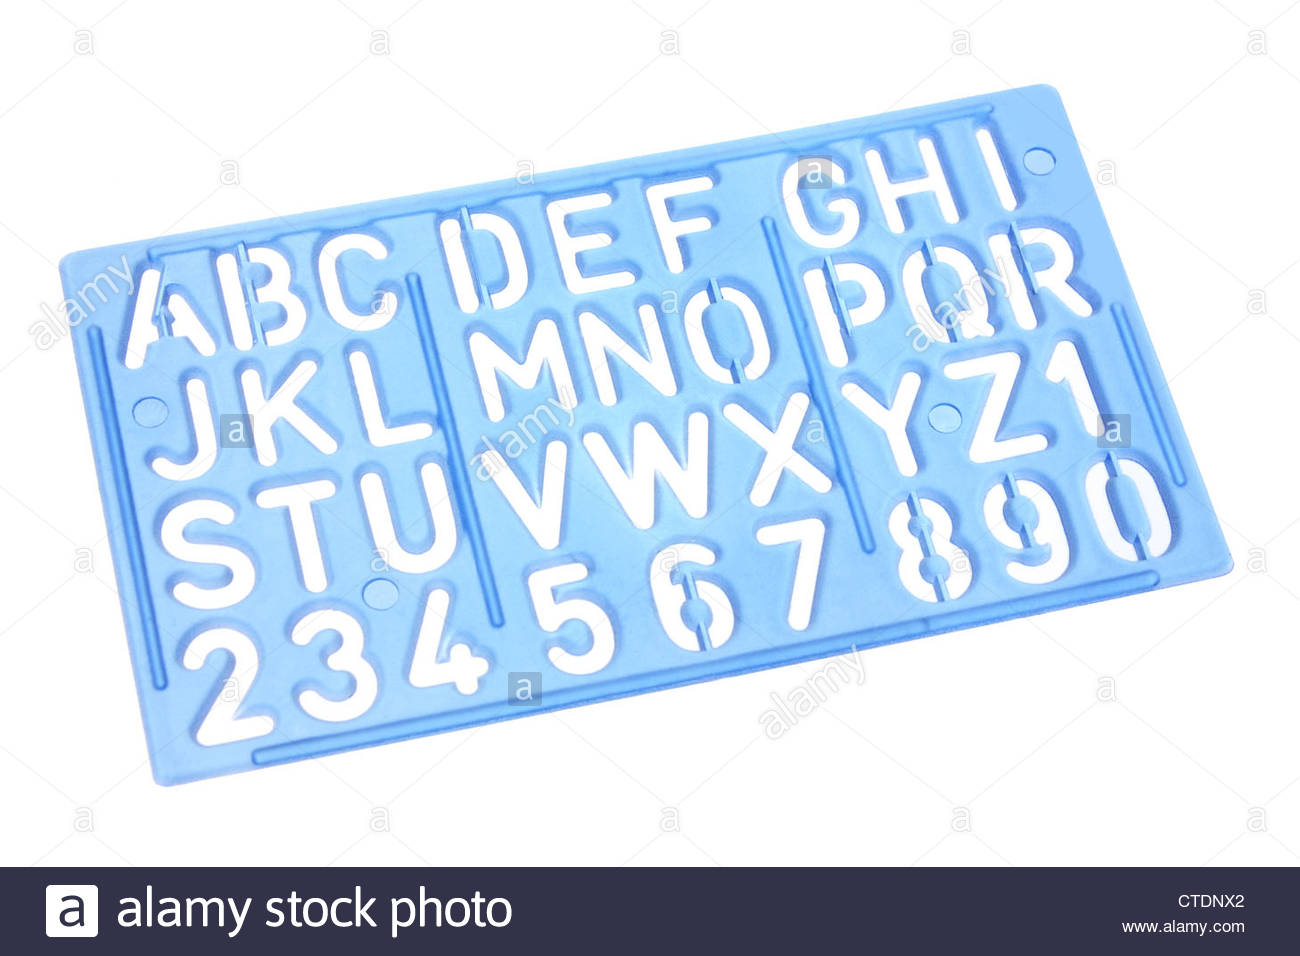 Alphabet Stencil Stock Photo - Alamy within Alphabet Tracing Ruler